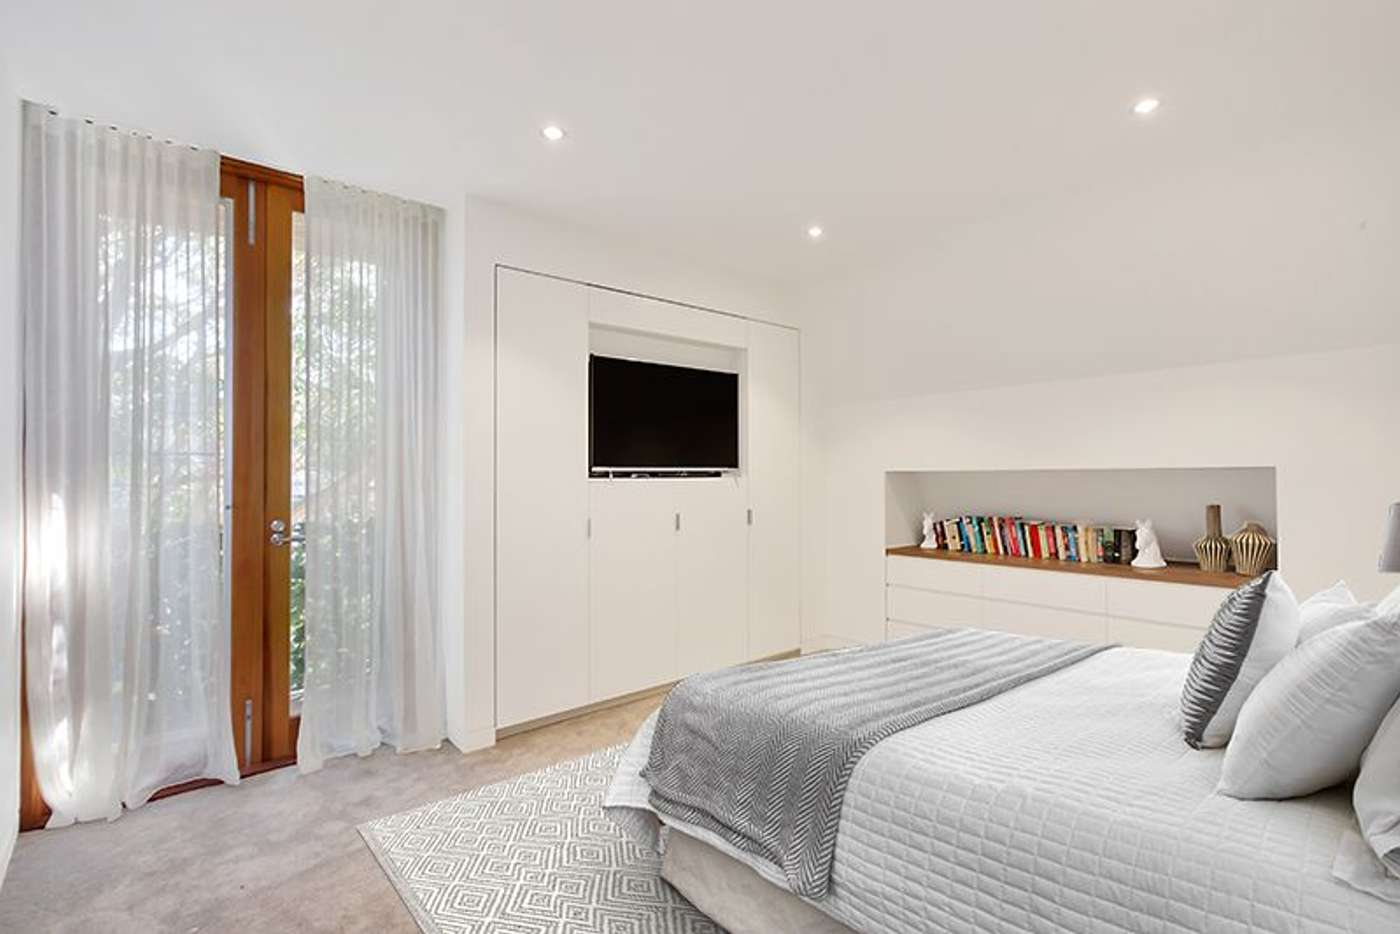 Fifth view of Homely apartment listing, 6/43A Captain Pipers Road, Vaucluse NSW 2030